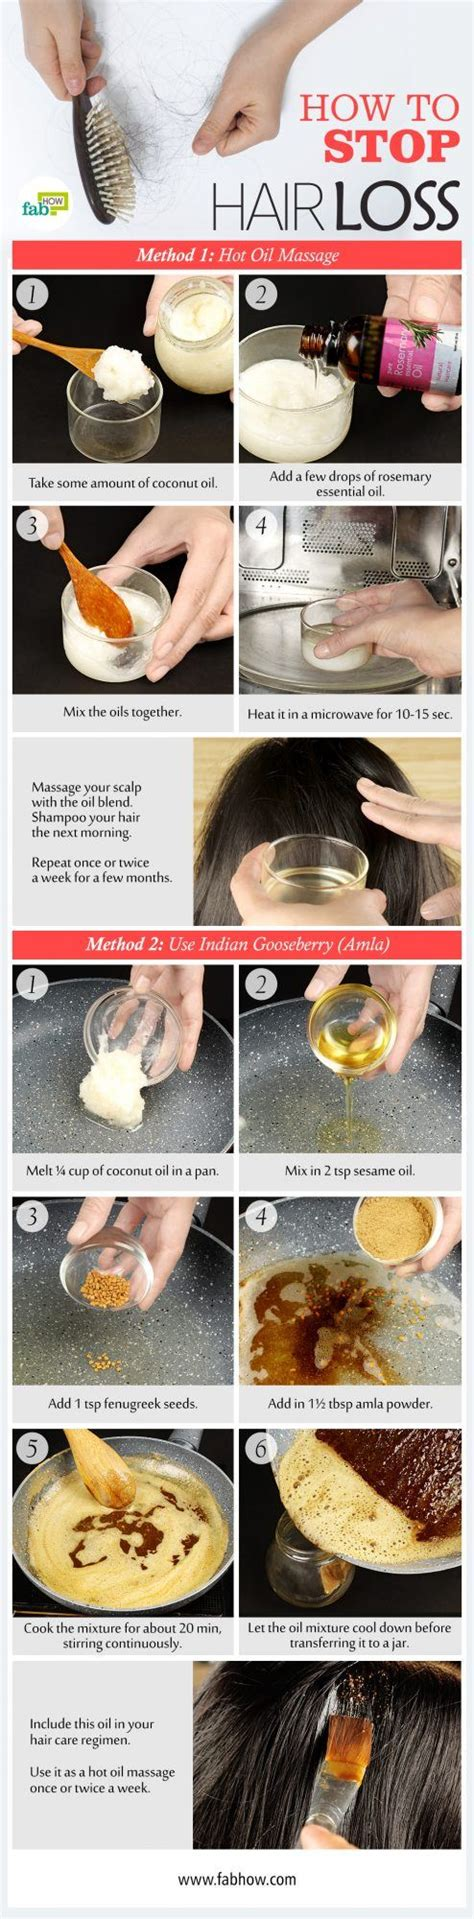 how to stop hair loss 5 methods with how to stop hair loss 5 methods with real pics fab how